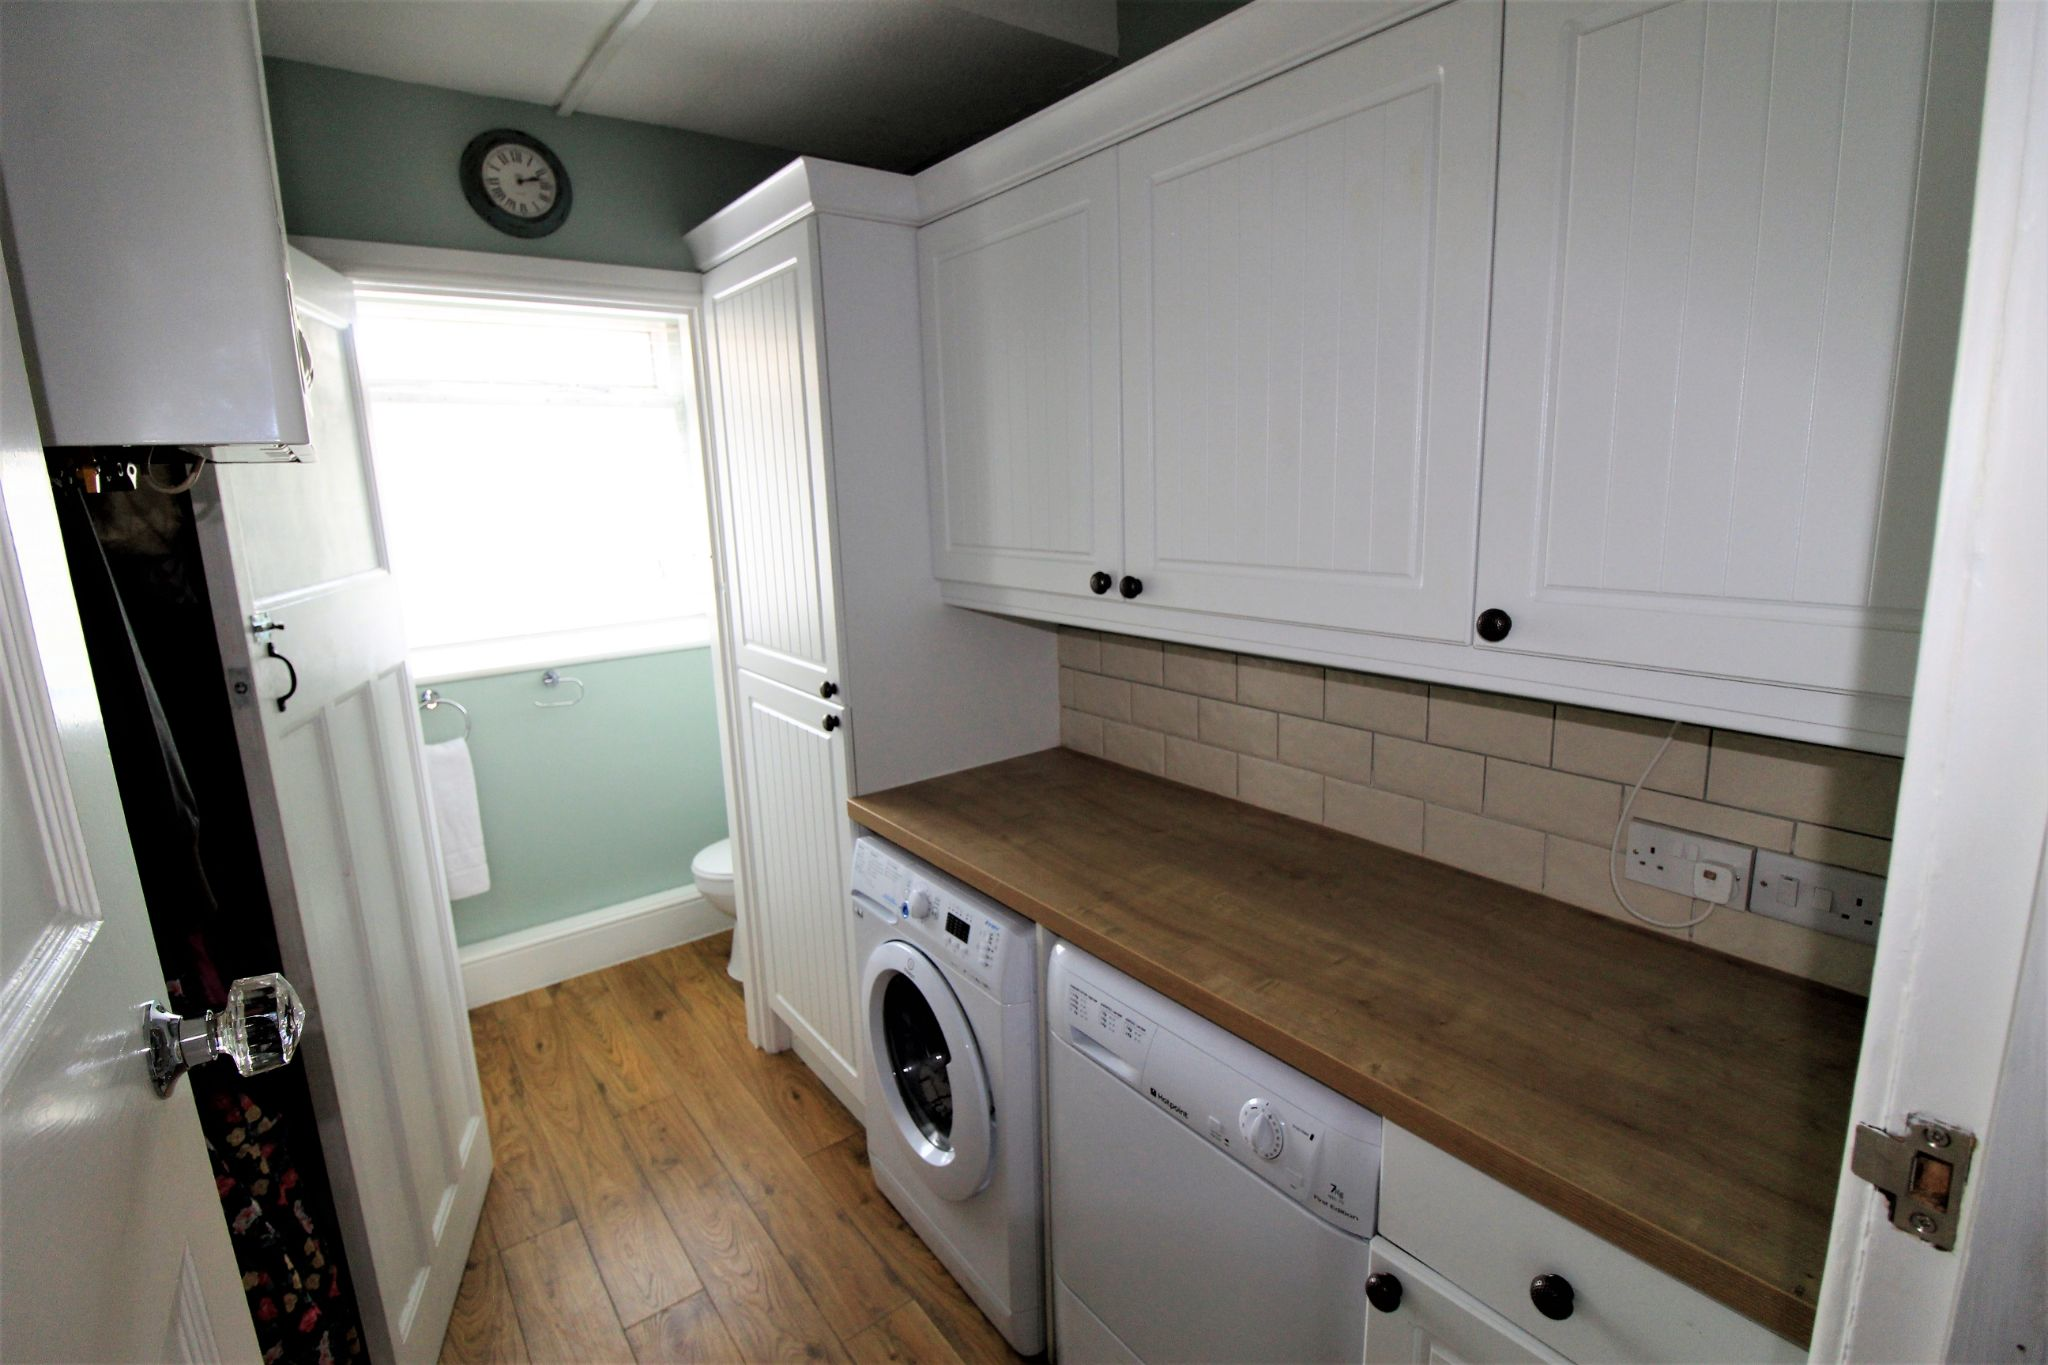 3 bedroom town house SSTC in Halifax - Photograph 10